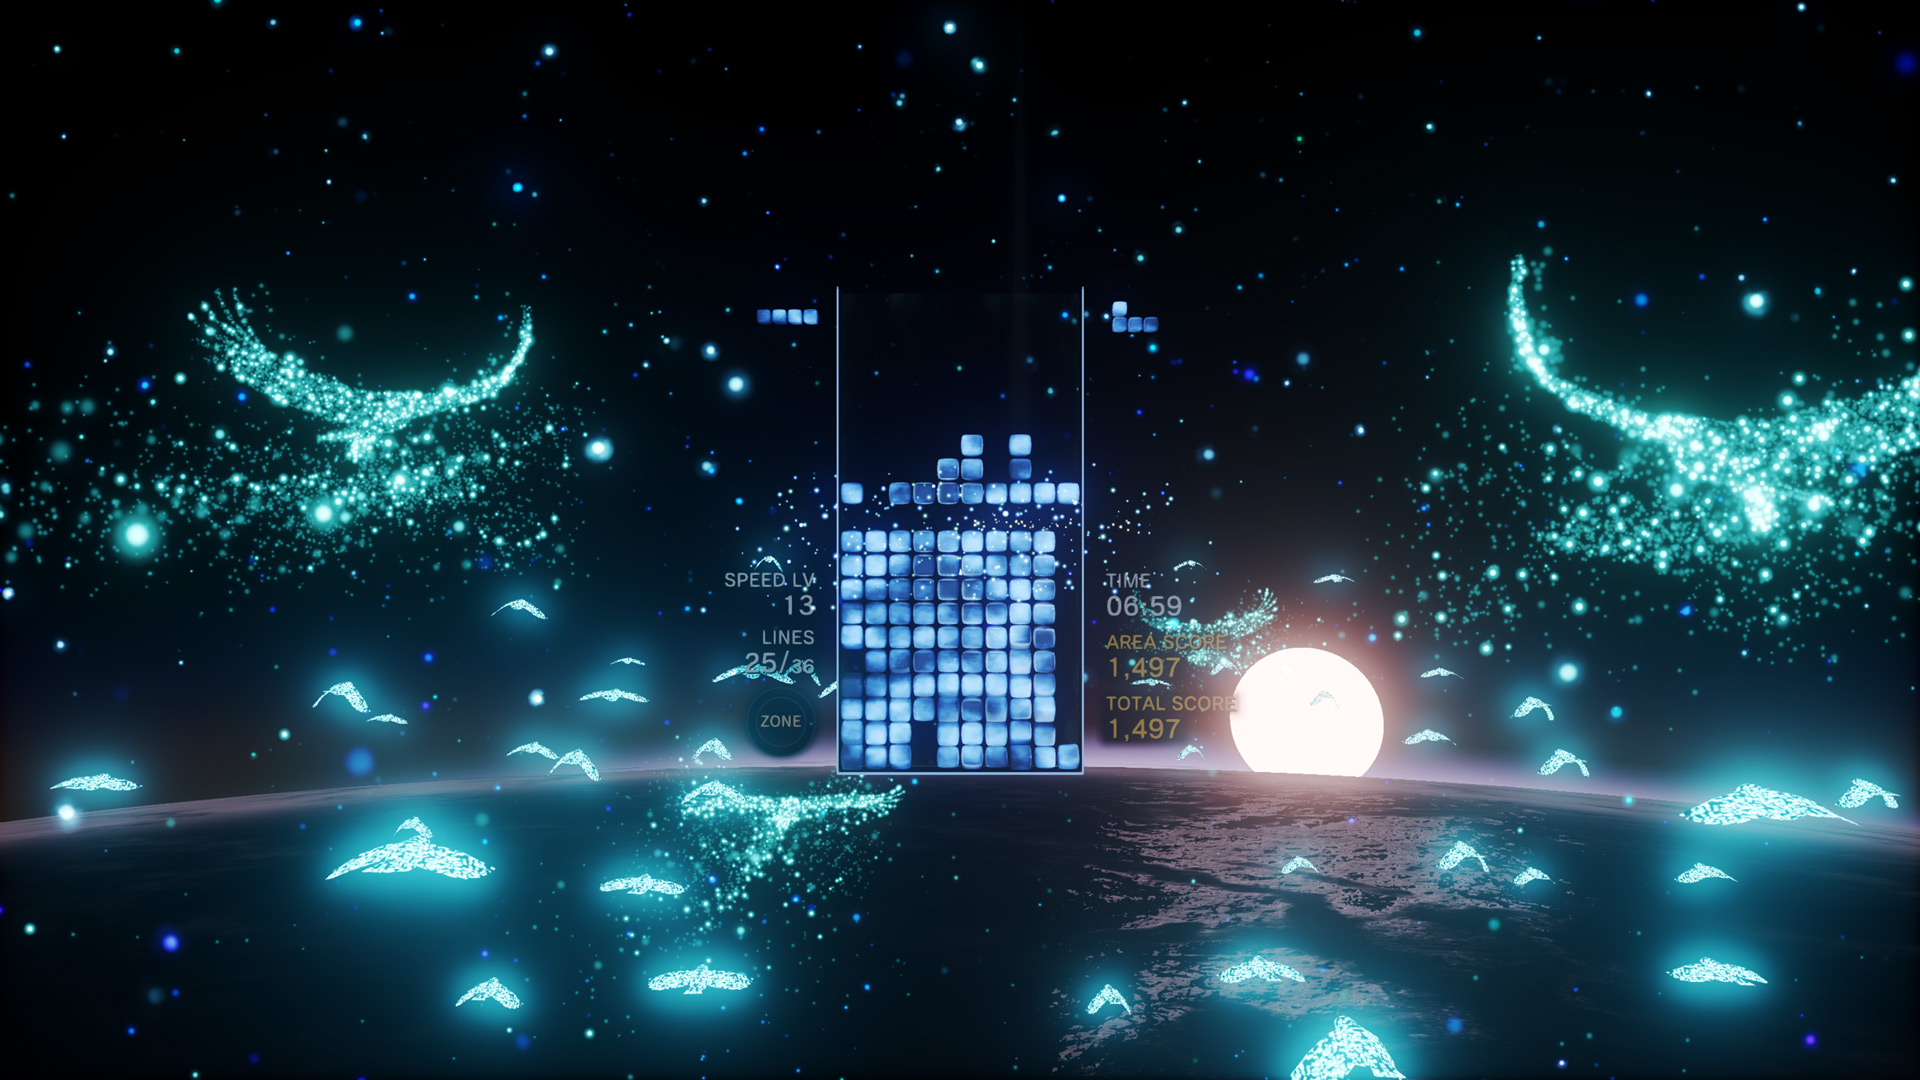 tetris effect wallpaper 67842